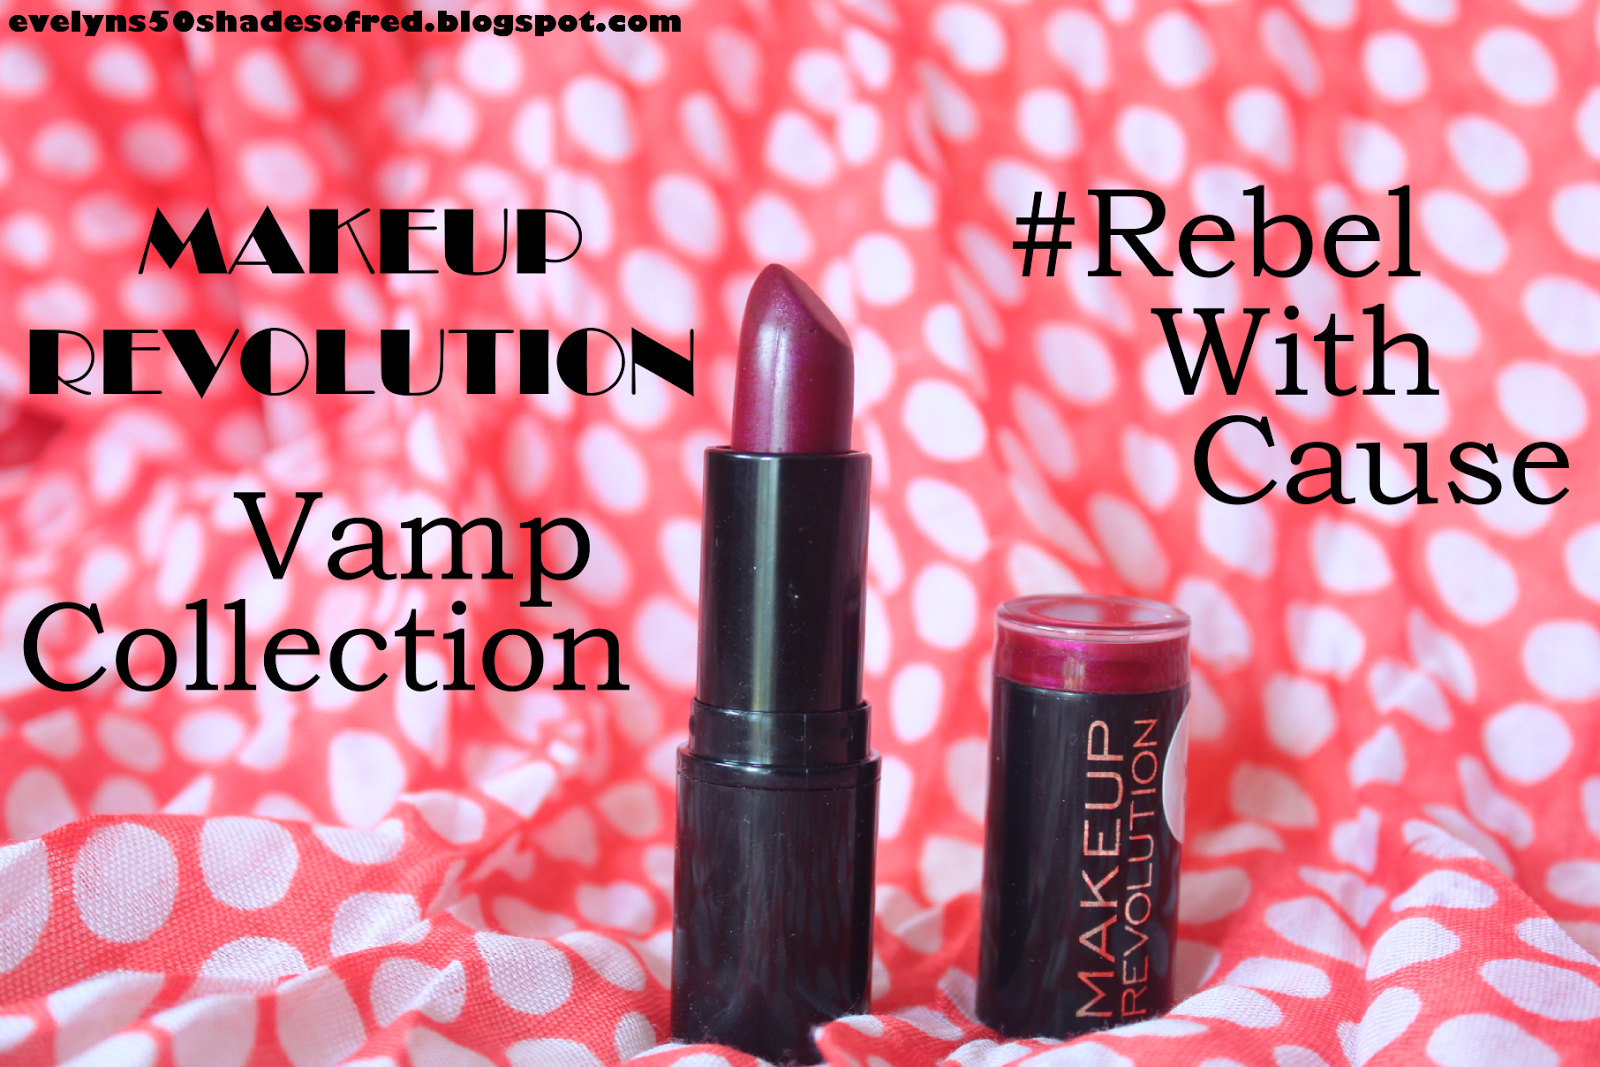 Make Up Revolution Lipstick – Vamp Collection – Rebel With Cause